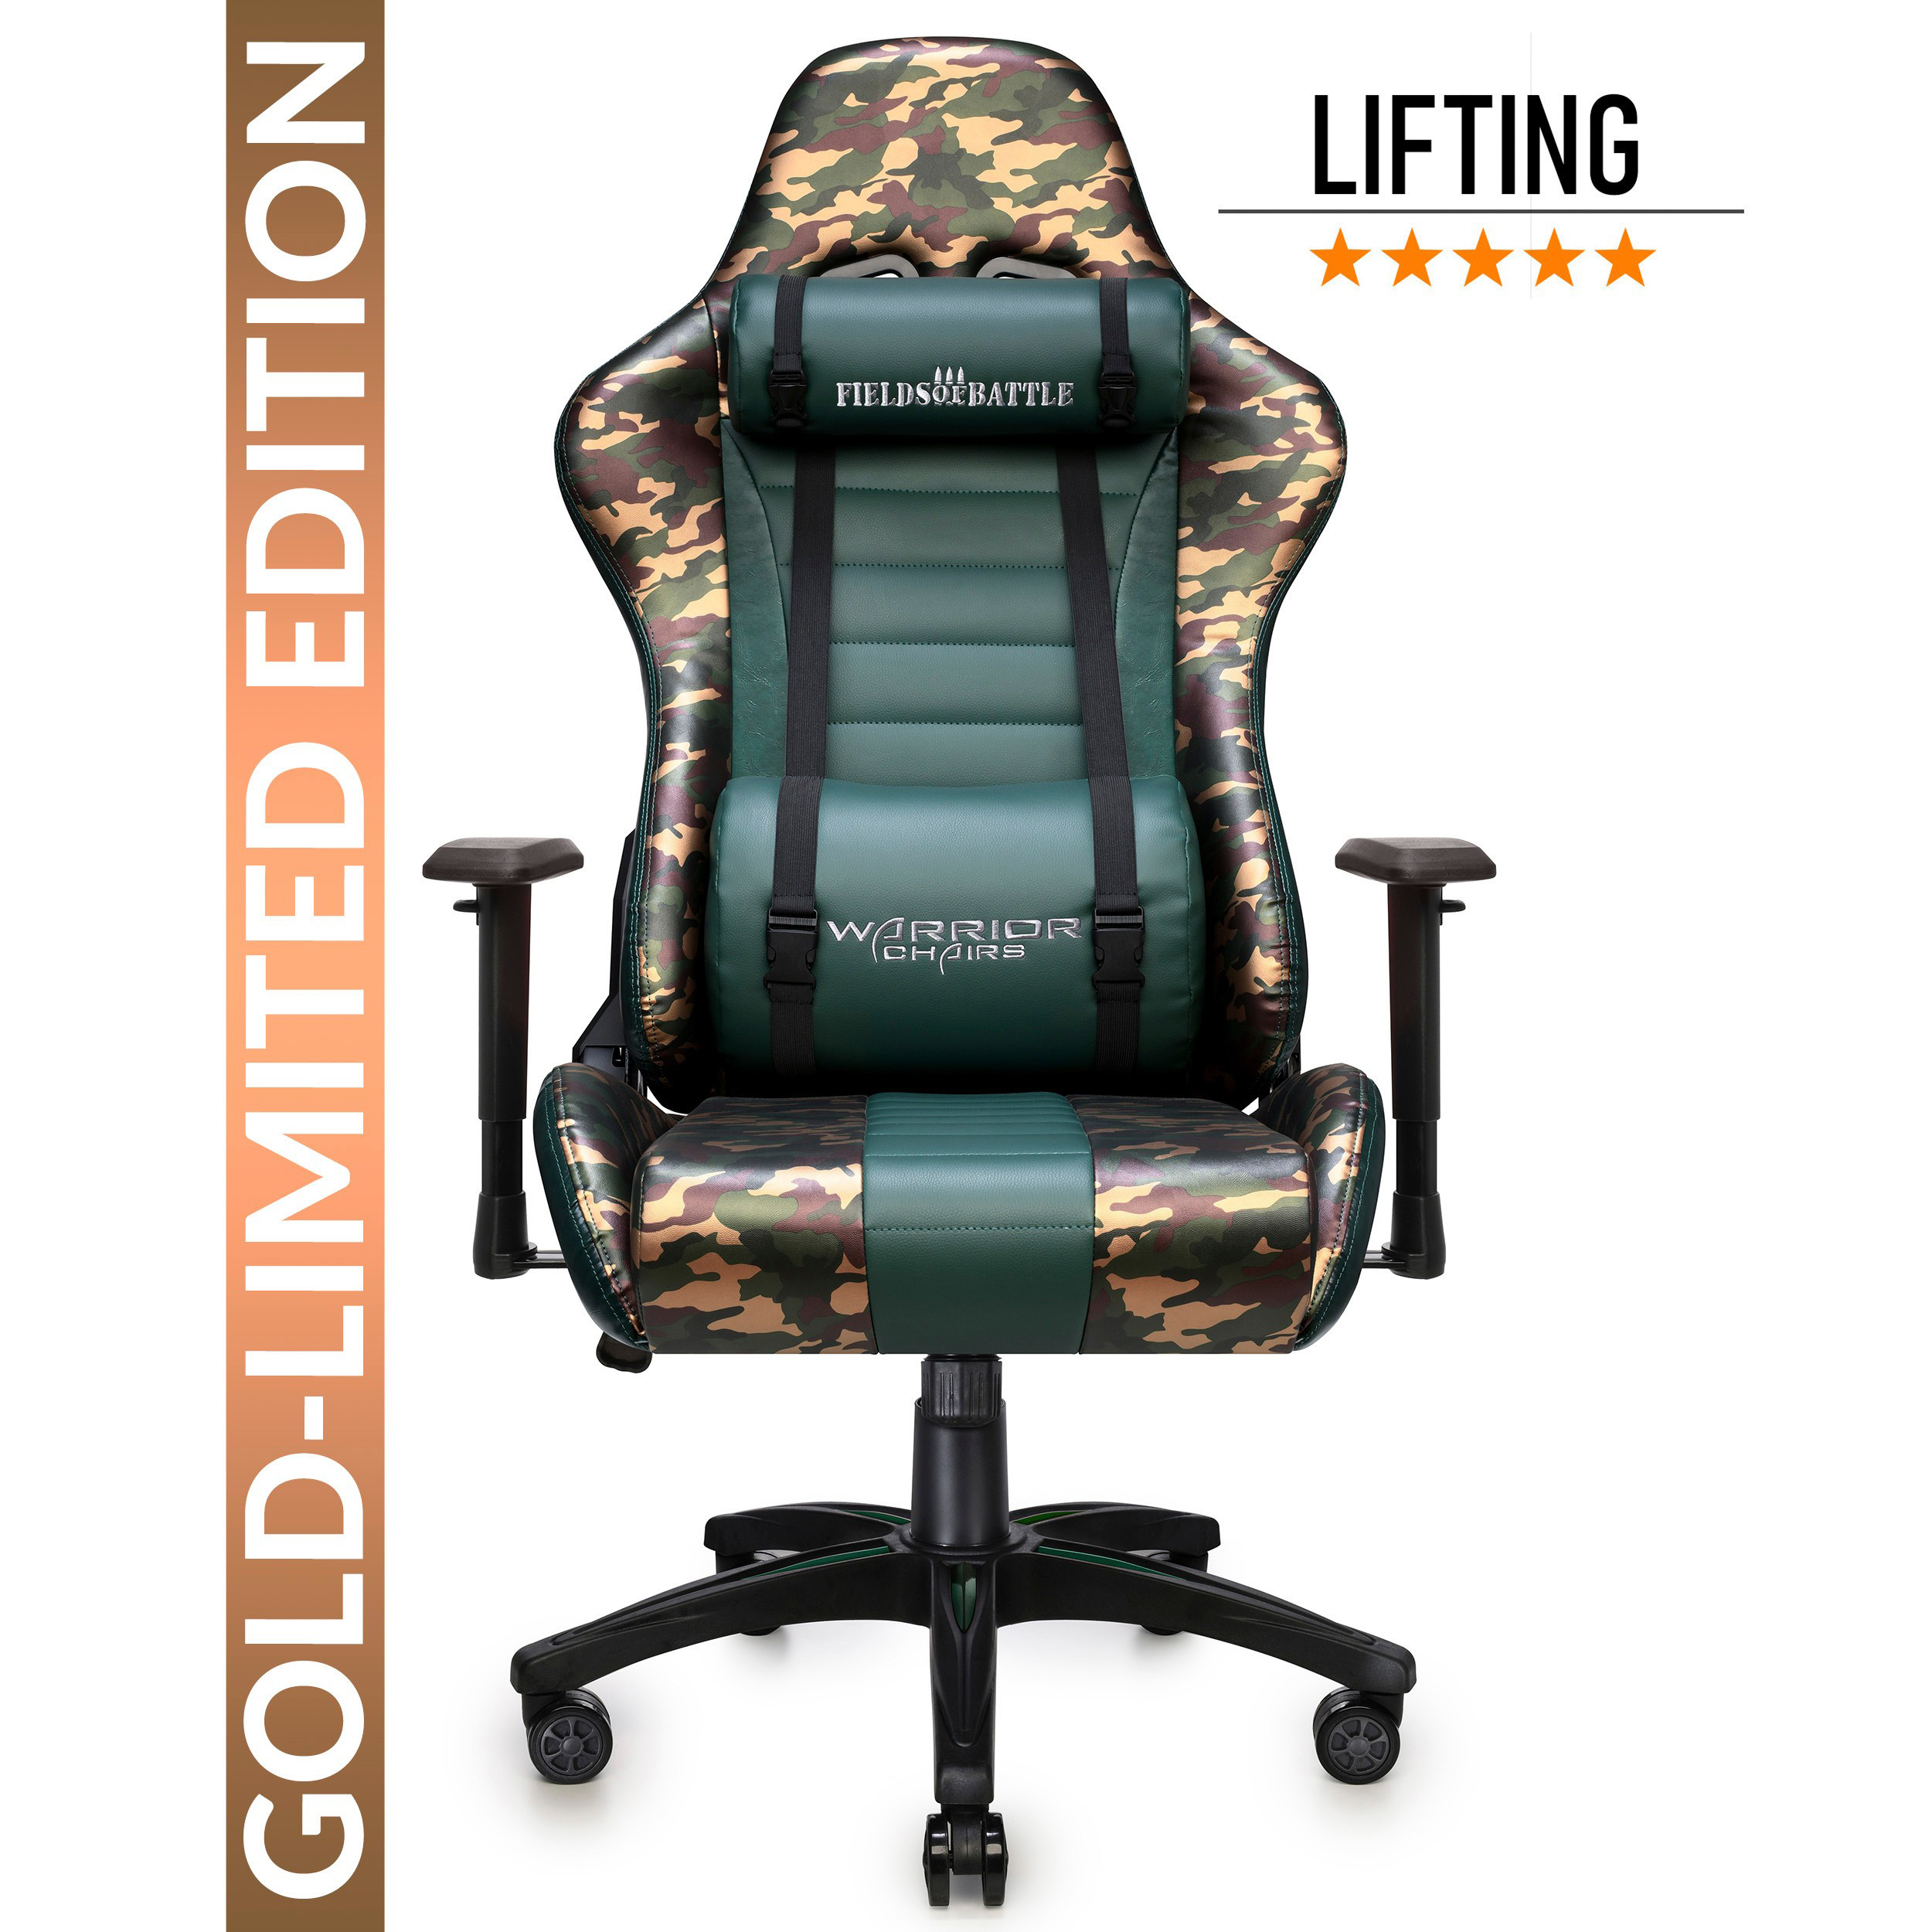 #Warrior Chairs fotel FOB Forest Gold Limited edt